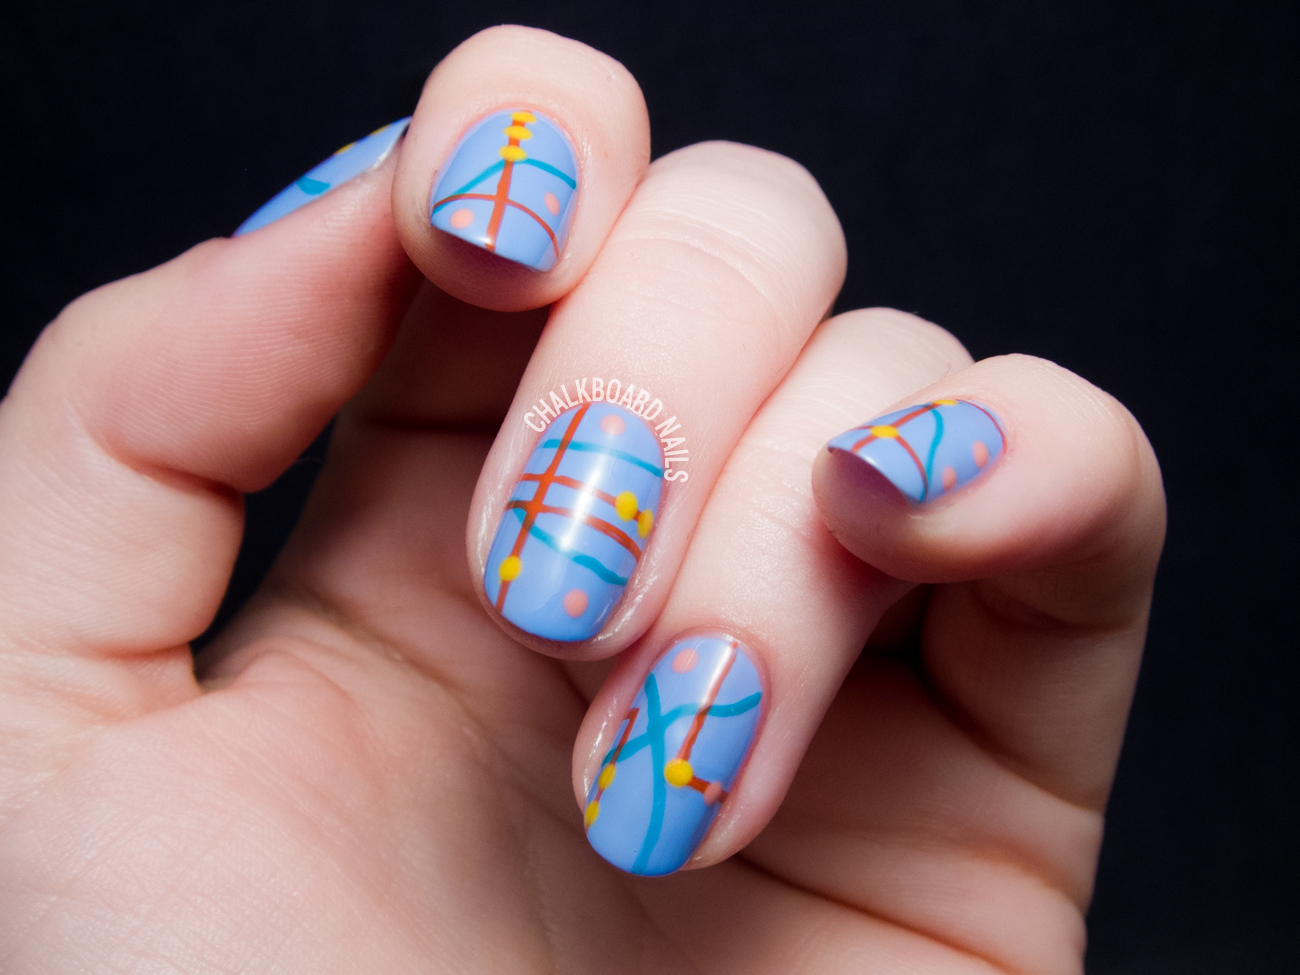 Roadmap Nail Art by @chalkboardnails